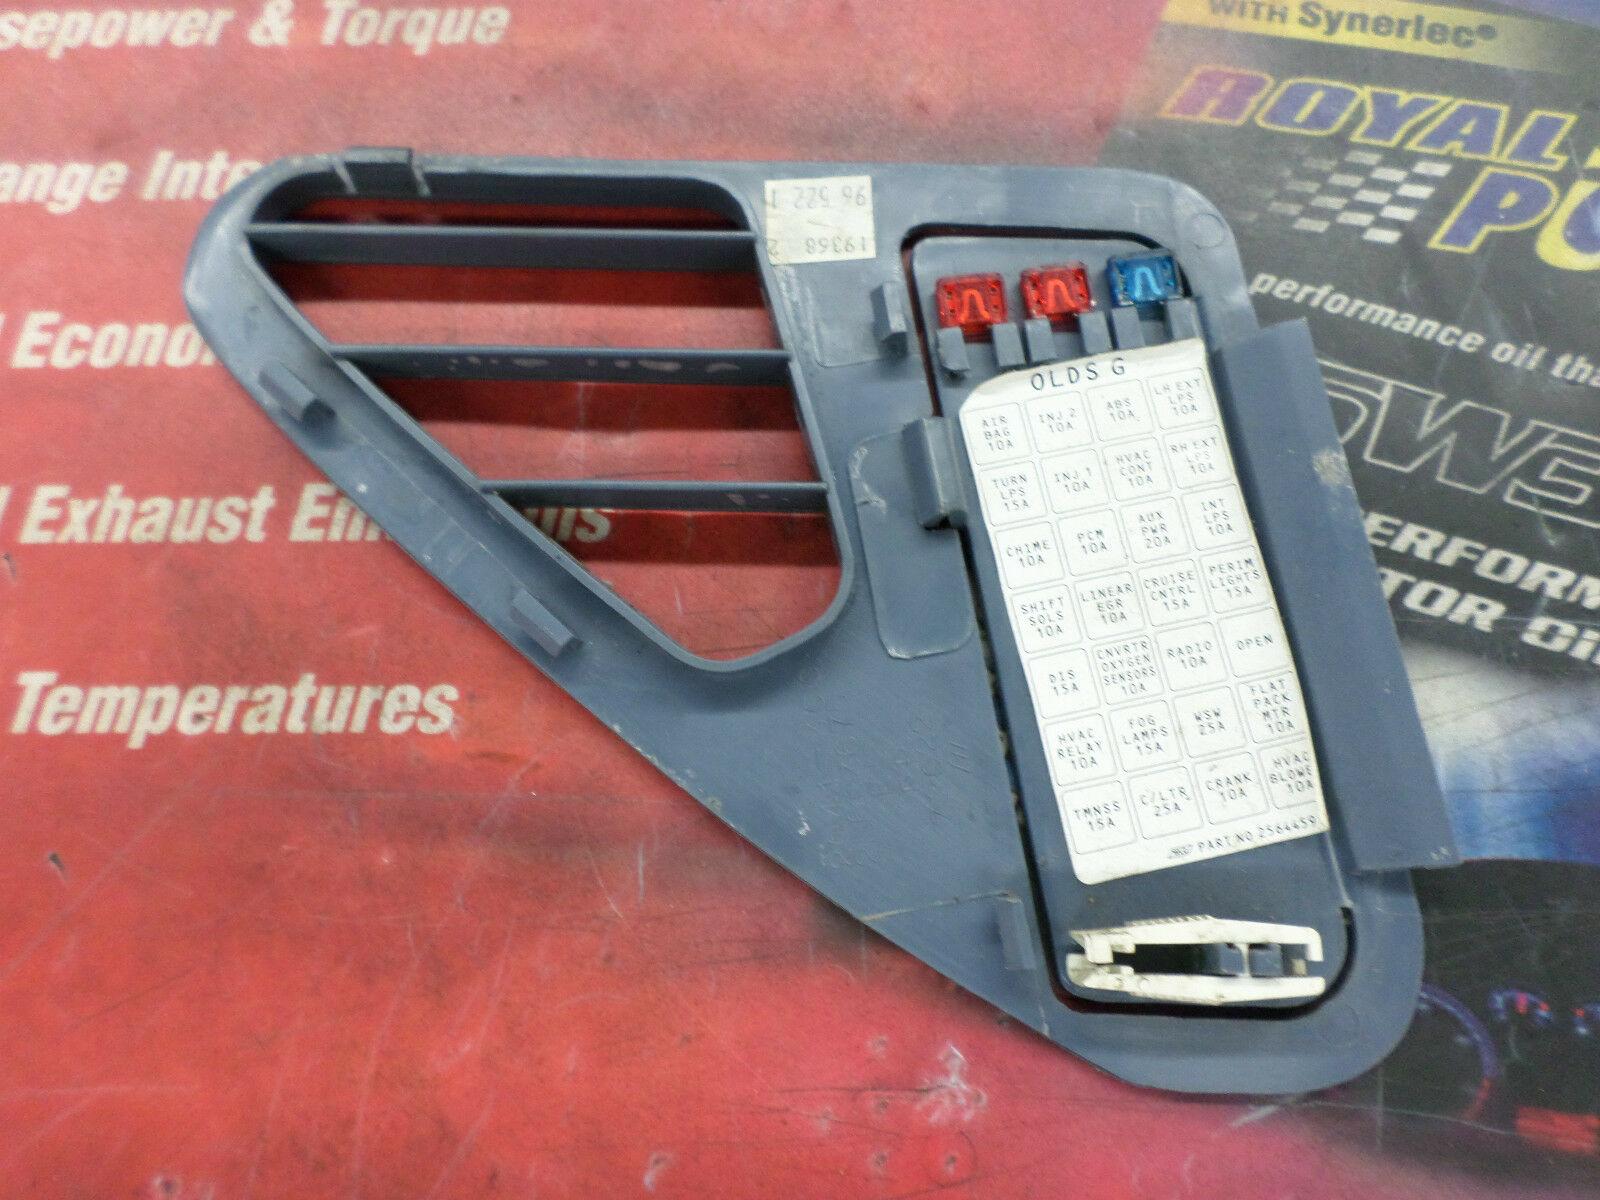 hight resolution of 1995 1999 oldsmobile aurora oem fuse box lid cover blue in color and in decent shape removed from a 1997 oldsmobile aurora check your part number and